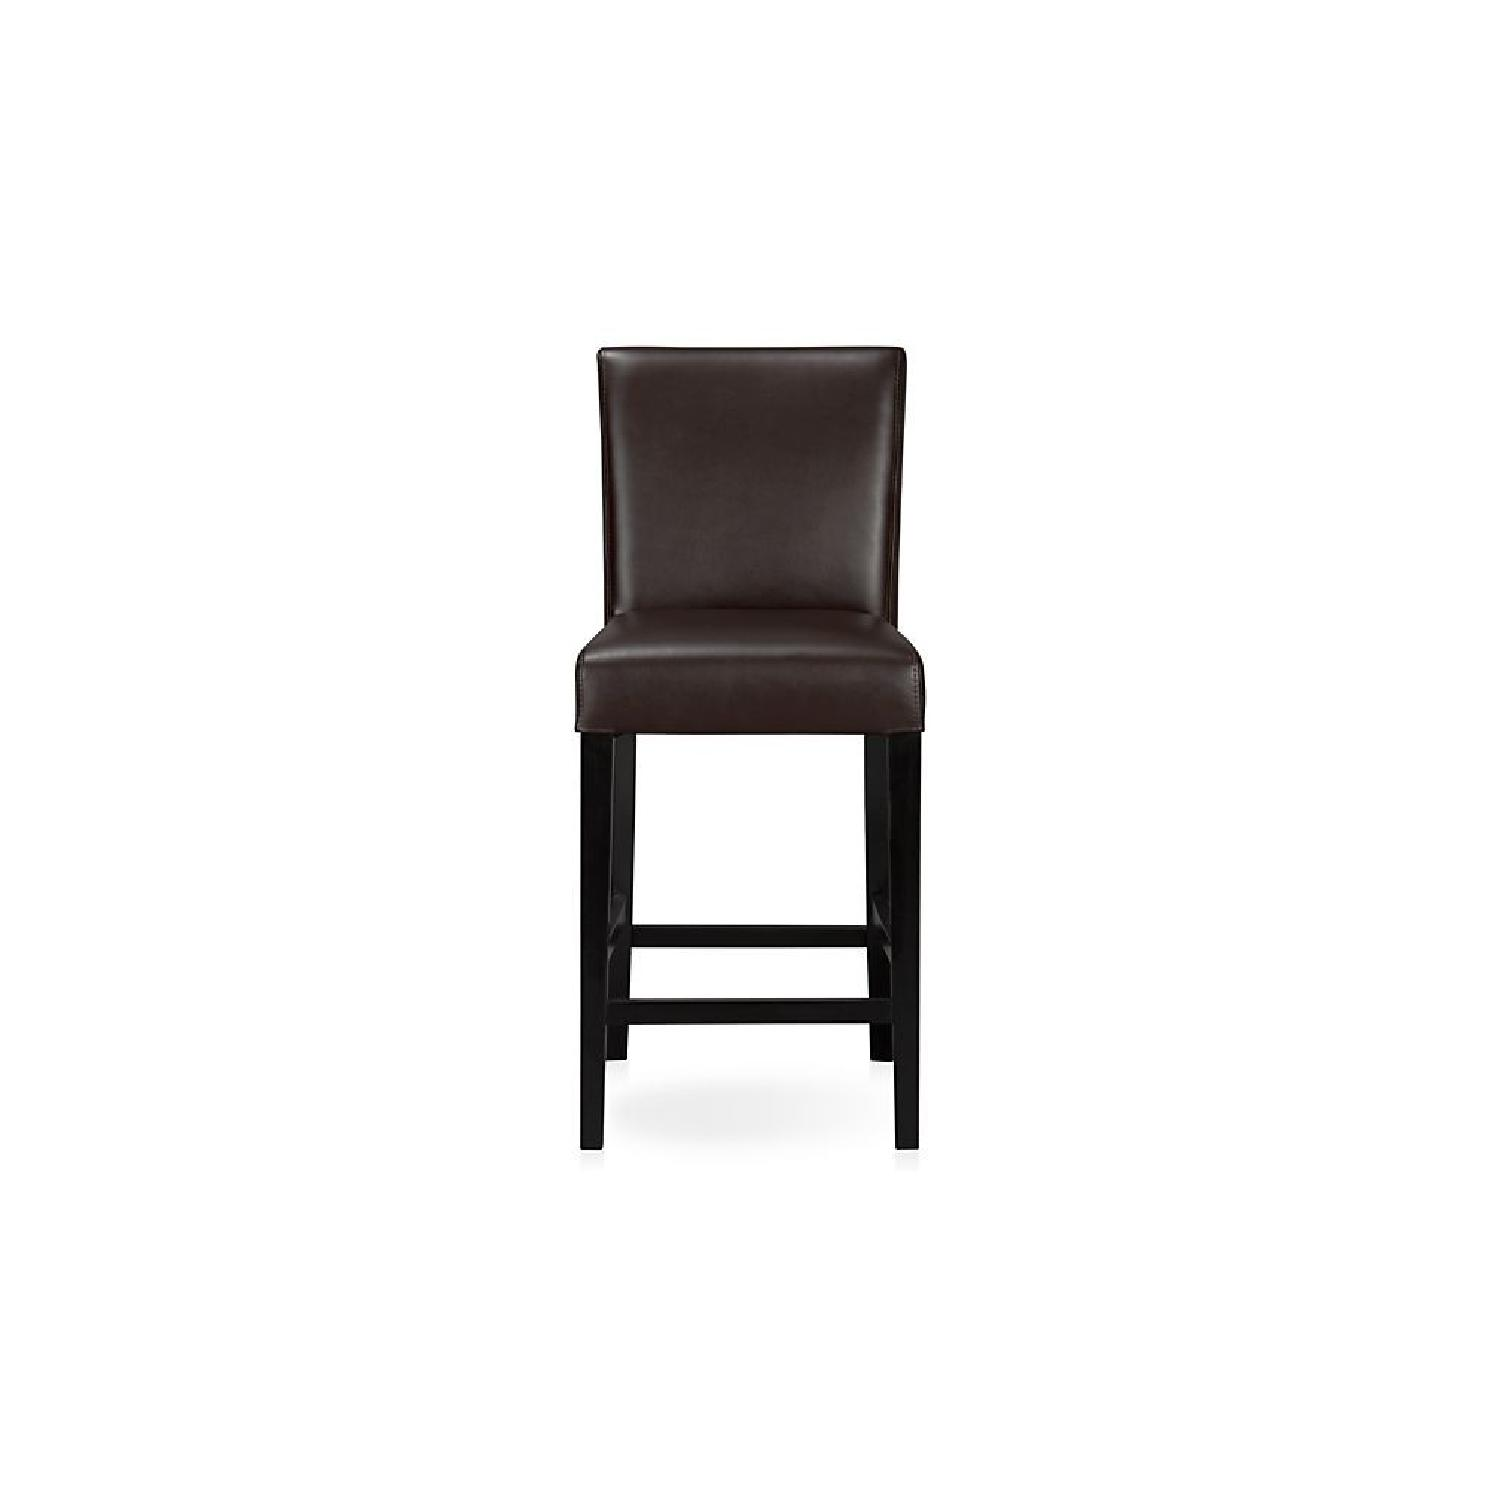 Crate & Barrel Lowe Chocolate Leather Counter Stools